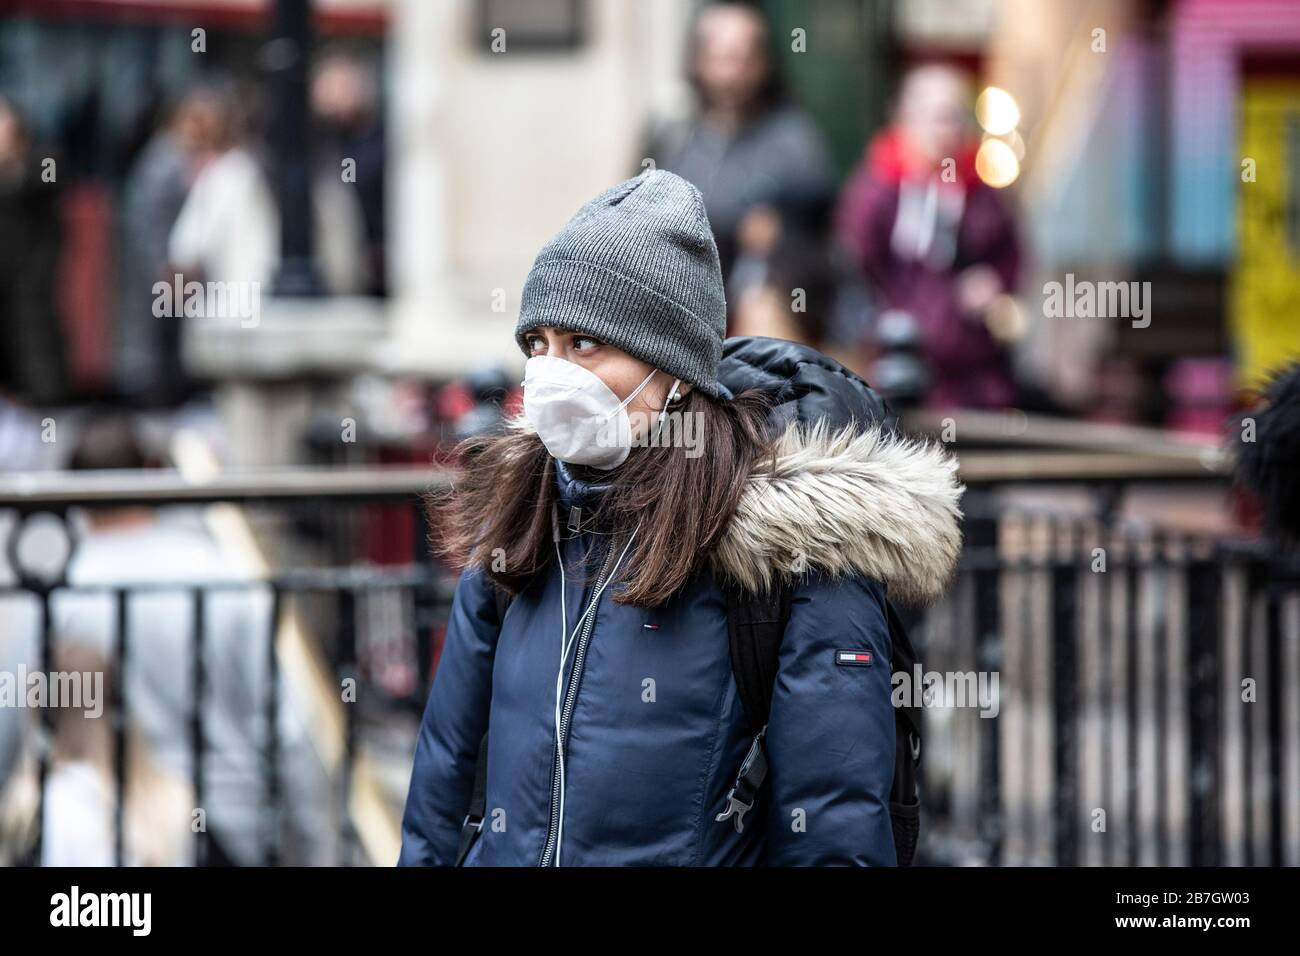 Travellers take precautions by wearing face masks in the West End of London against infection of the Coronavirus Covid19 pandemic, England, UK Stock Photo